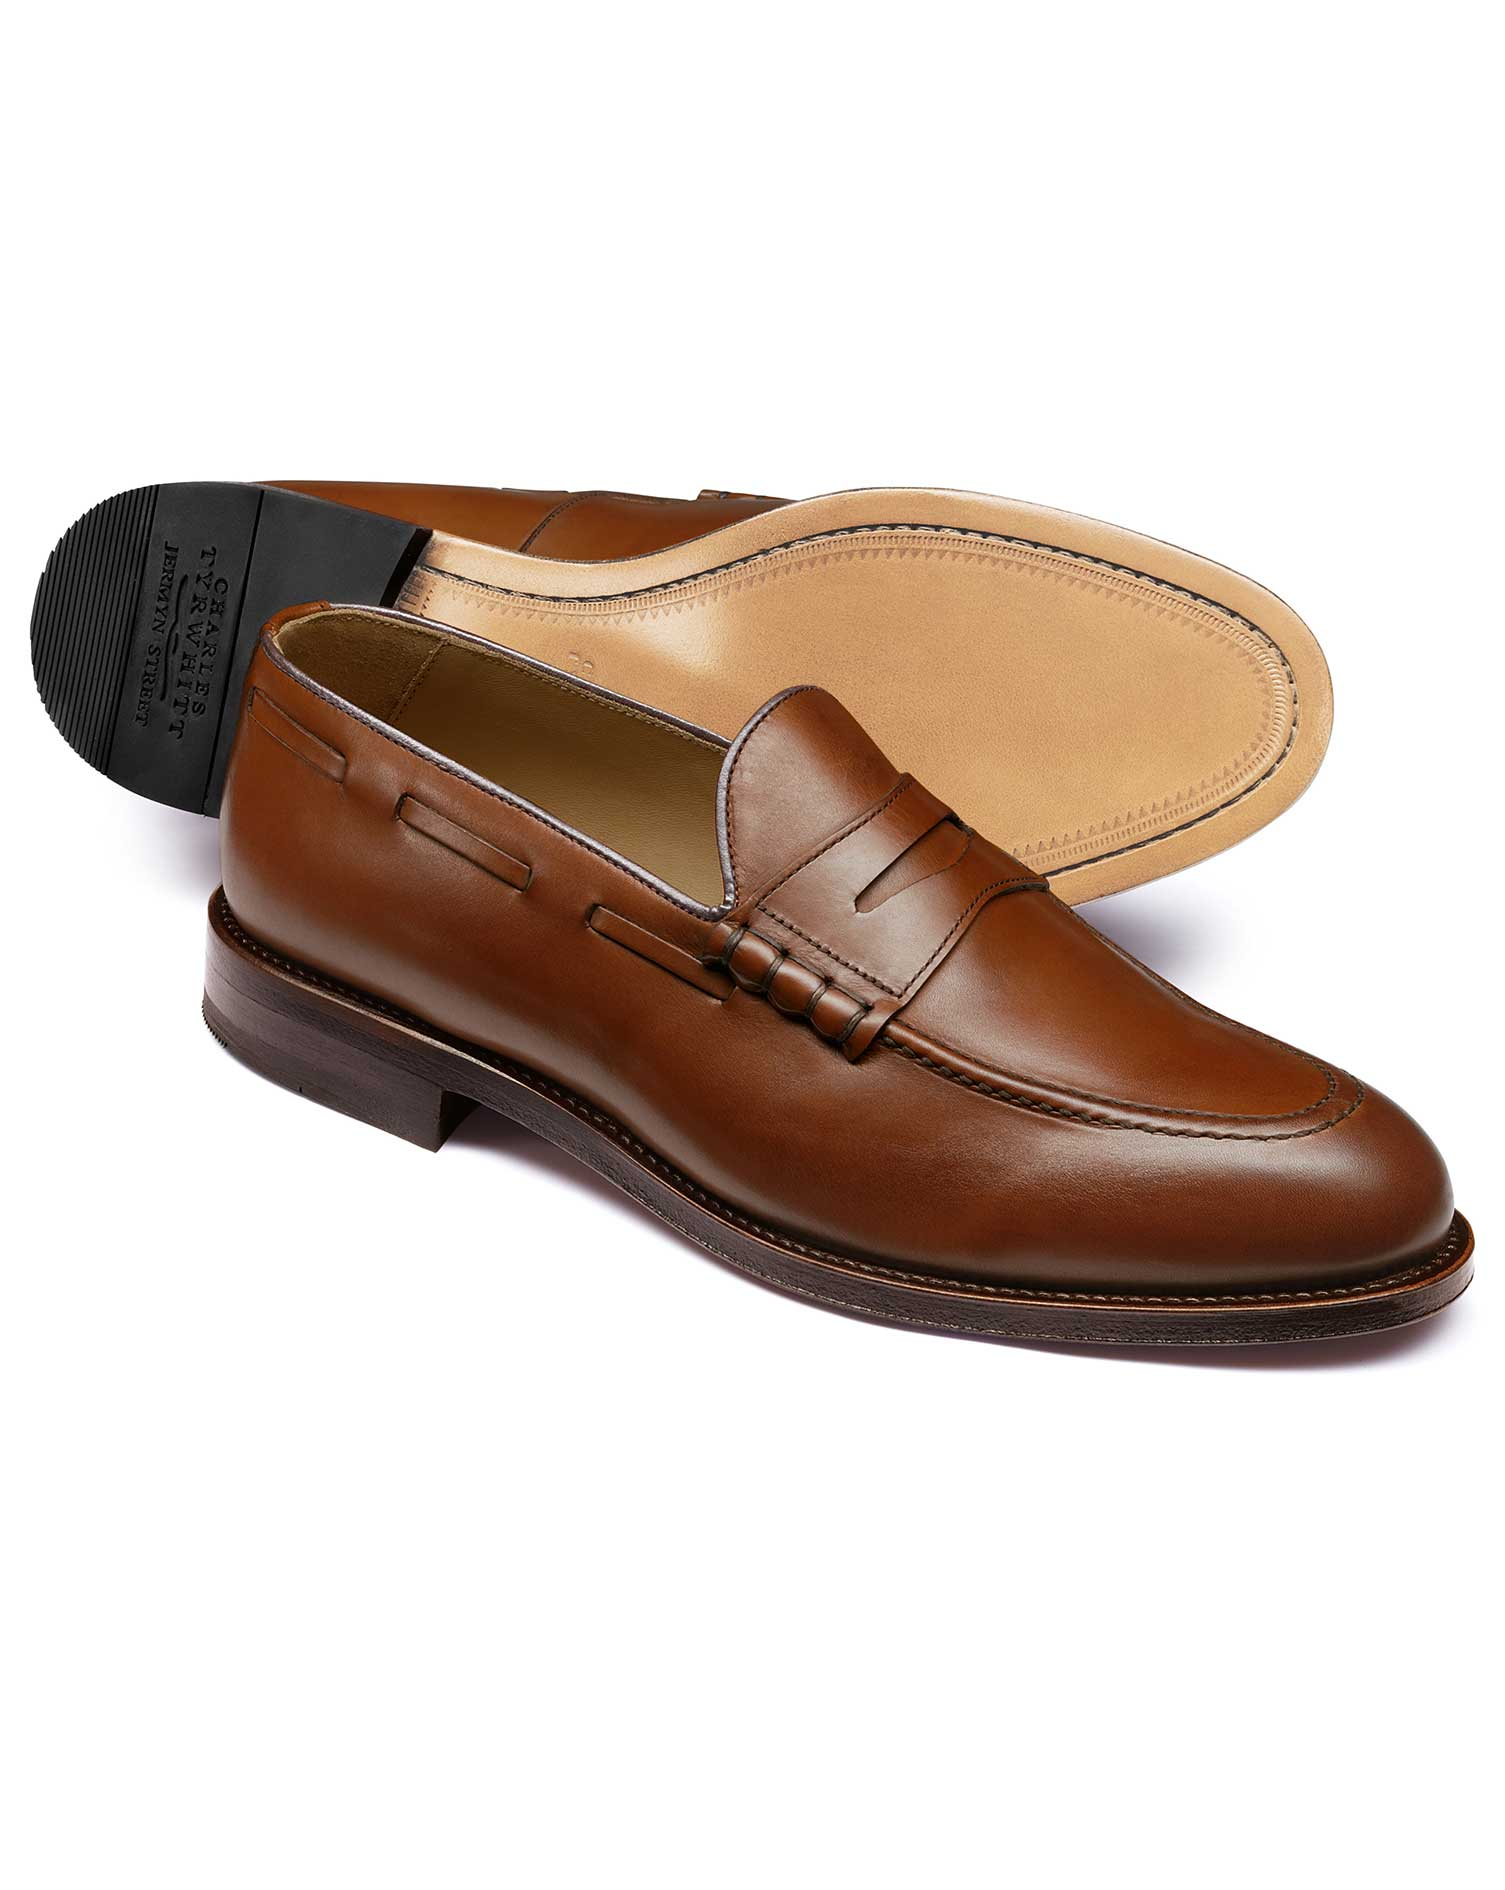 Tan Penny Loafer Size 9.5 R by Charles Tyrwhitt